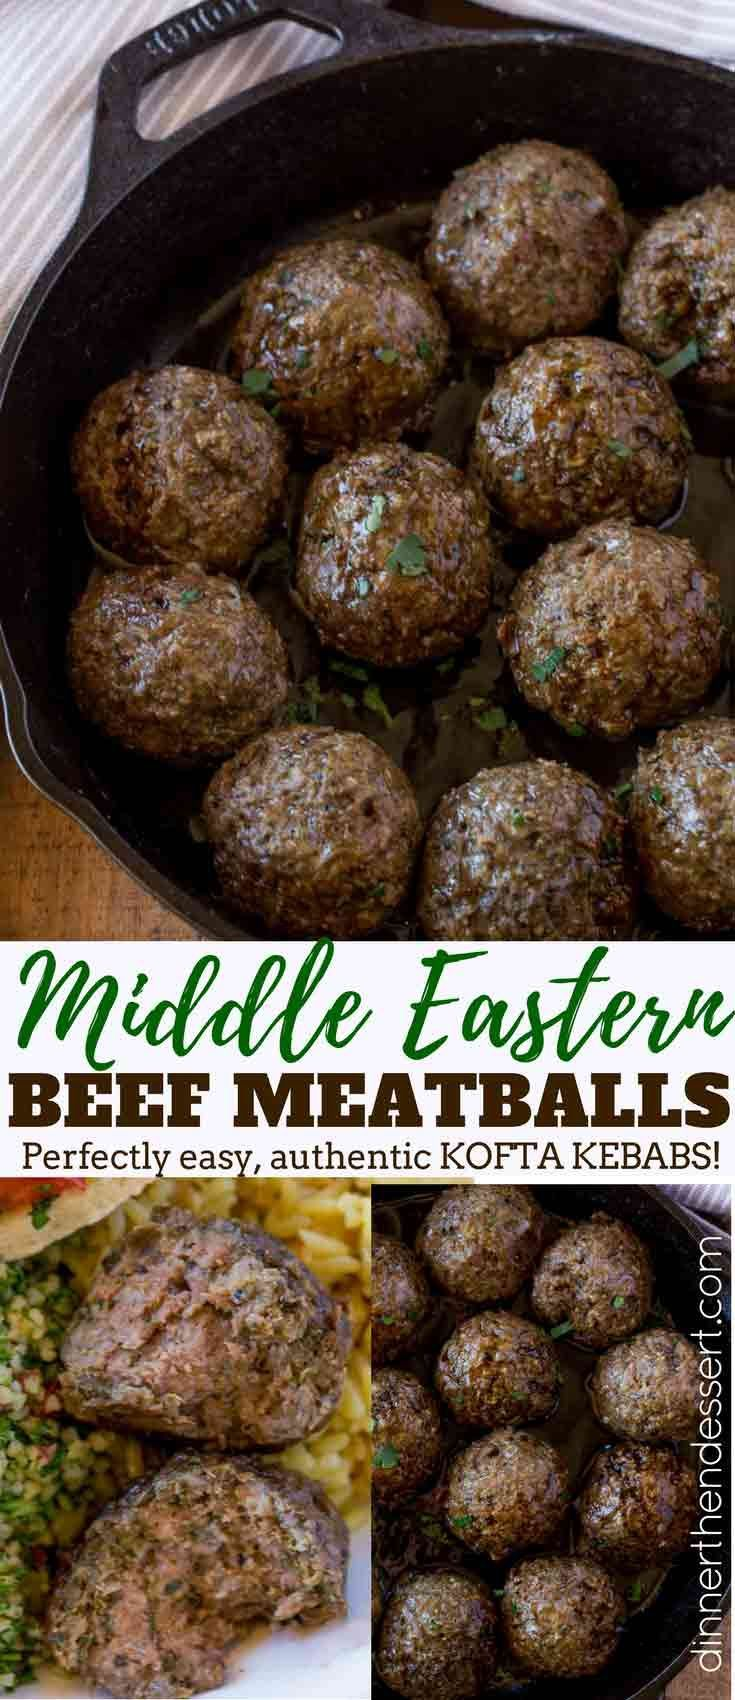 Middle Eastern Meatballs Kofta Kebabs Made In 15 Minutes With